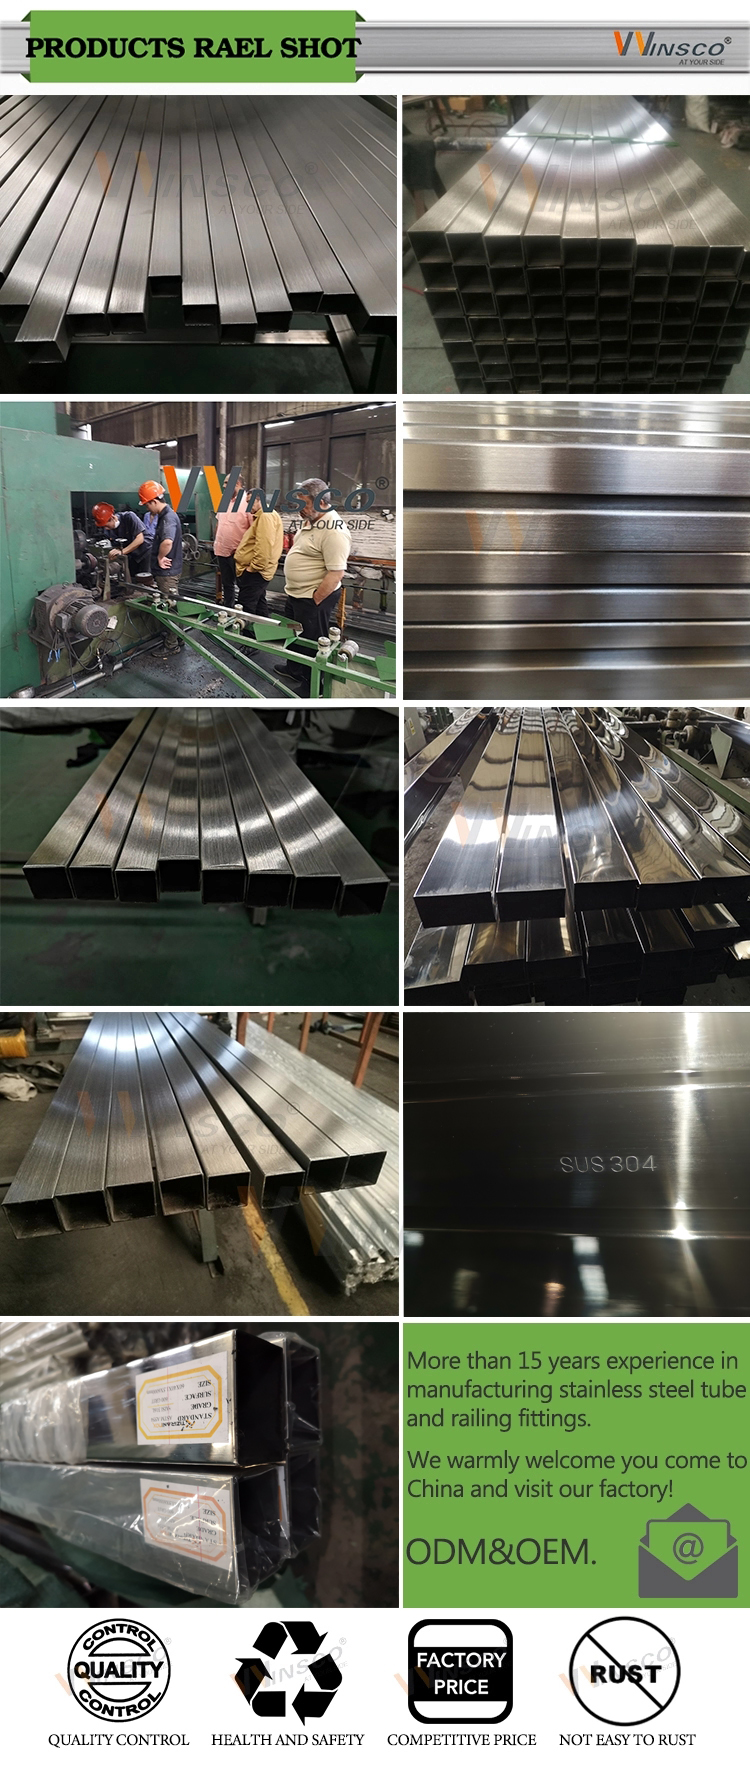 Mirror polished satin finished tube EN inox ASTM 304 grade stainless steel square pipe welded tubing harga